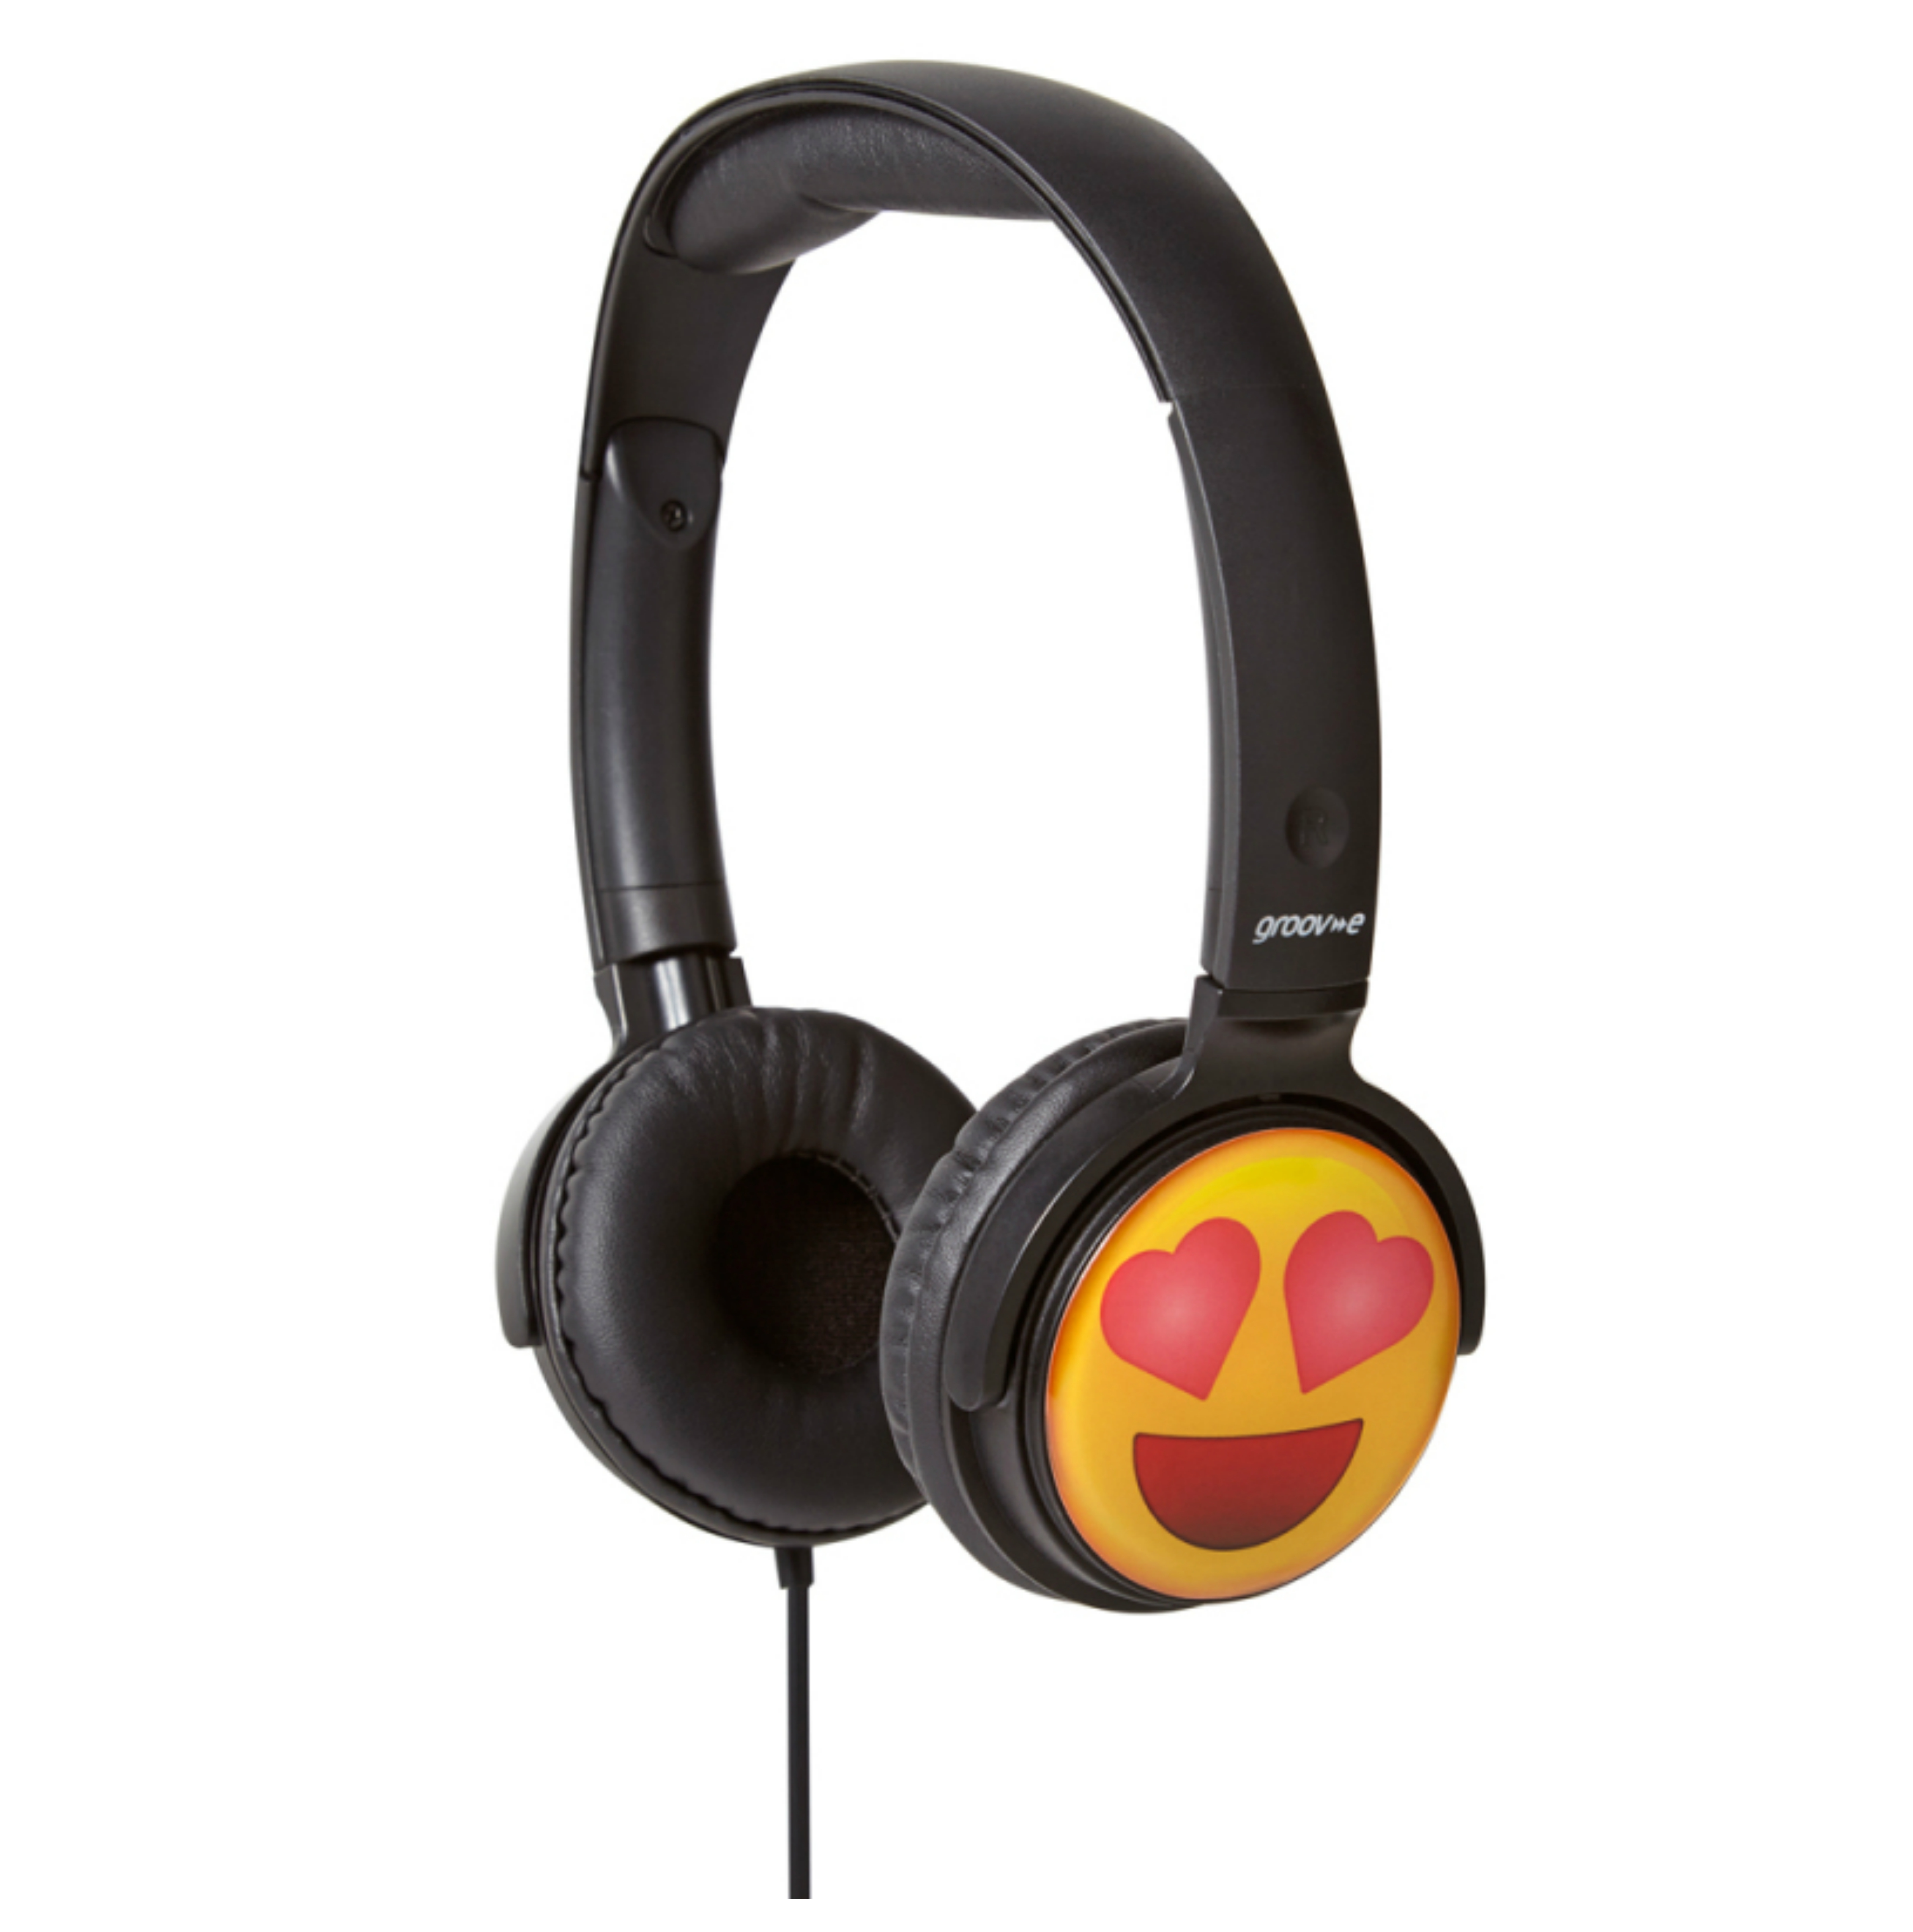 Groov-e GVEMJ13 EarMOJI's Stereo Comfortable Headphones With New Heart Eyes Face